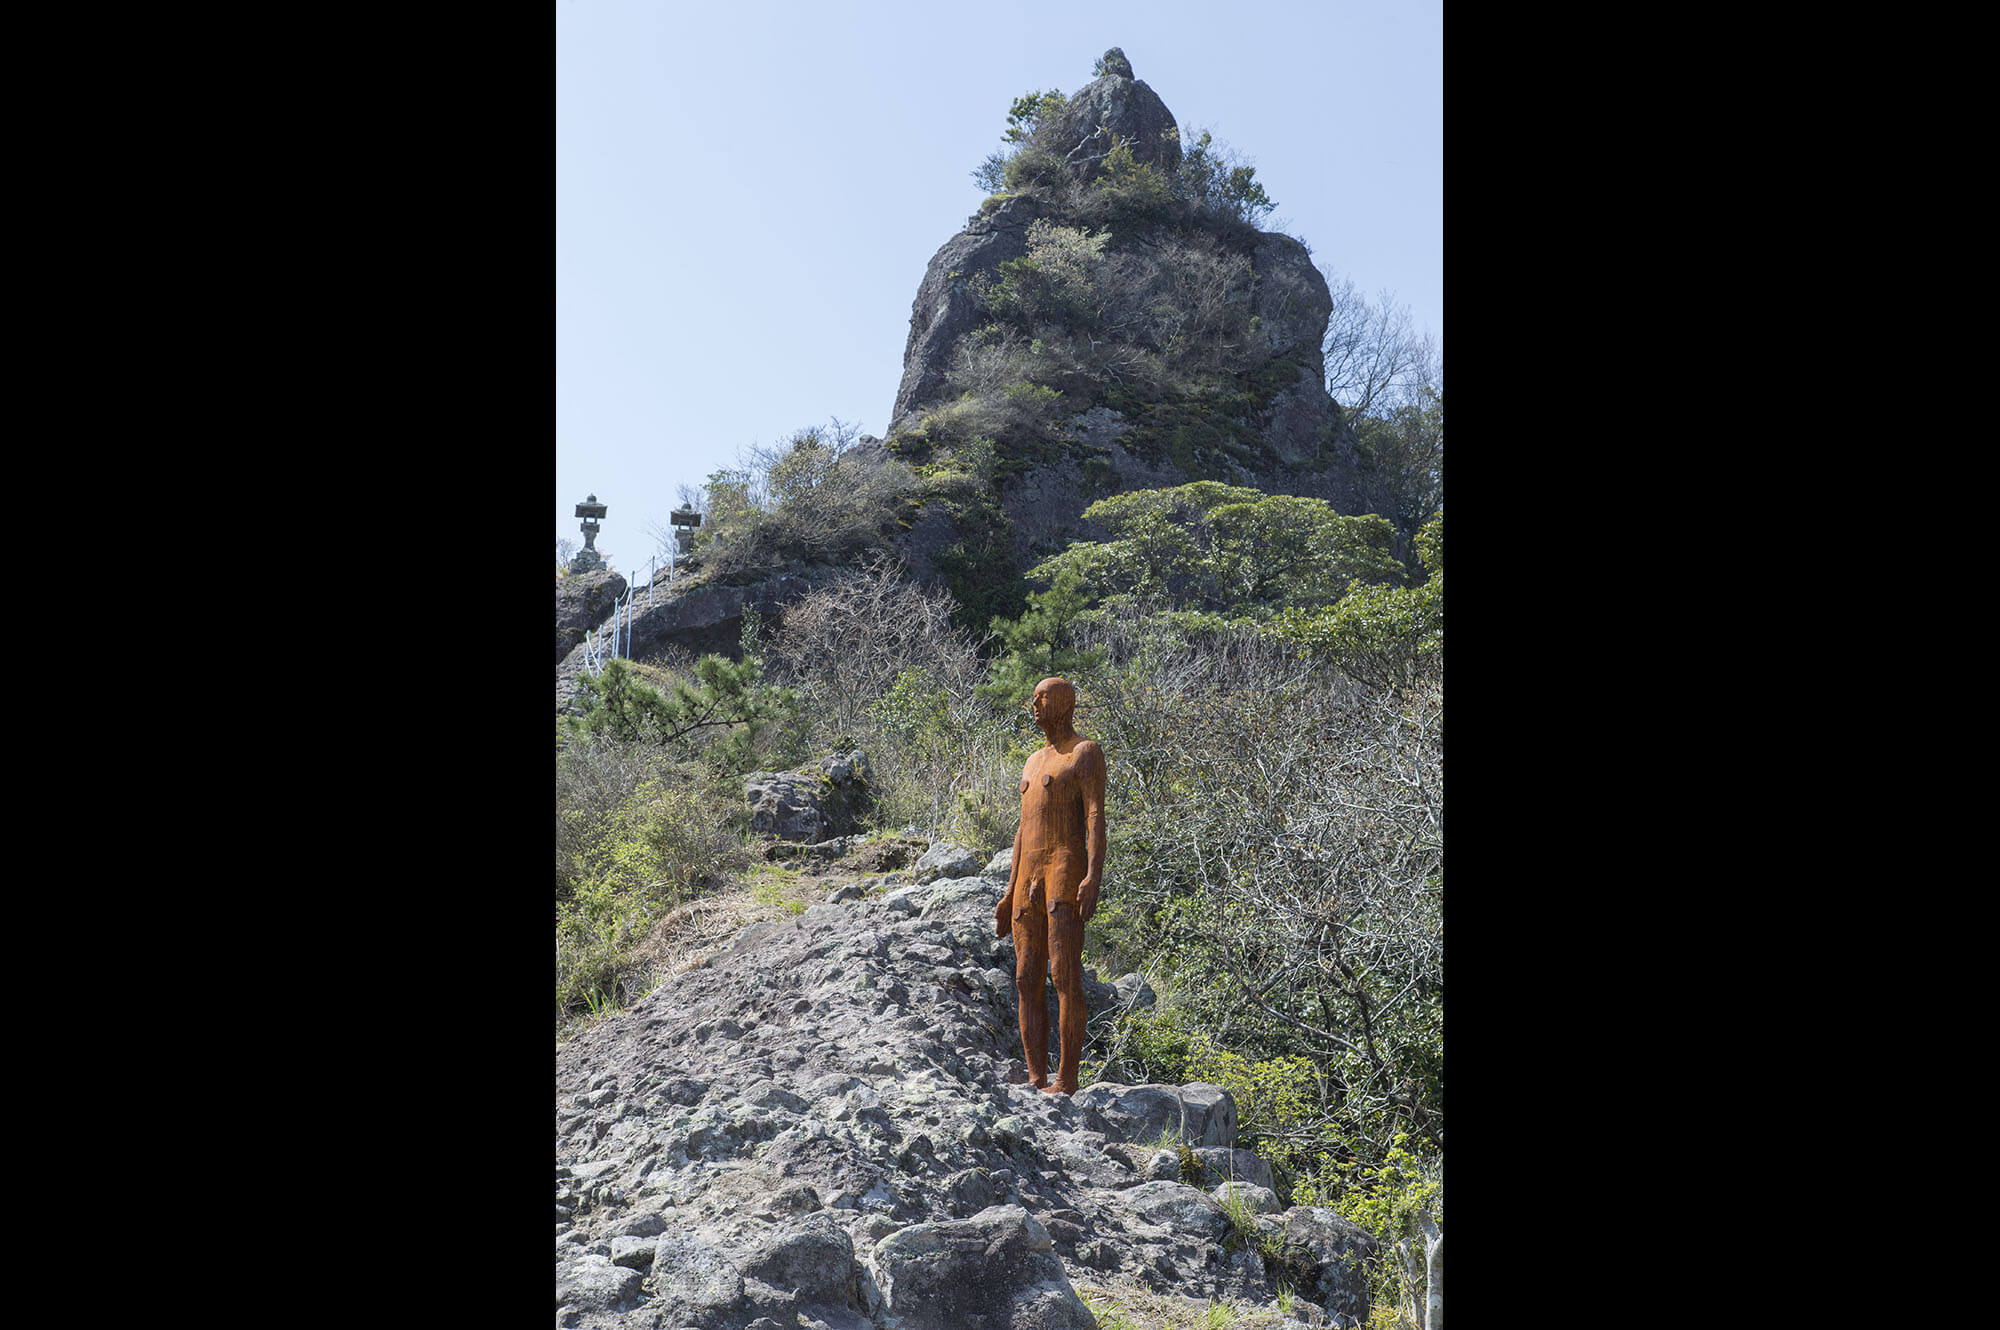 Antony Gormley | アントニー・ゴームリー | ANOTHER TIME XX (2013) | 現代アート・パブリックアート | offsociety inc. 現代美術・アート Contemporary Art